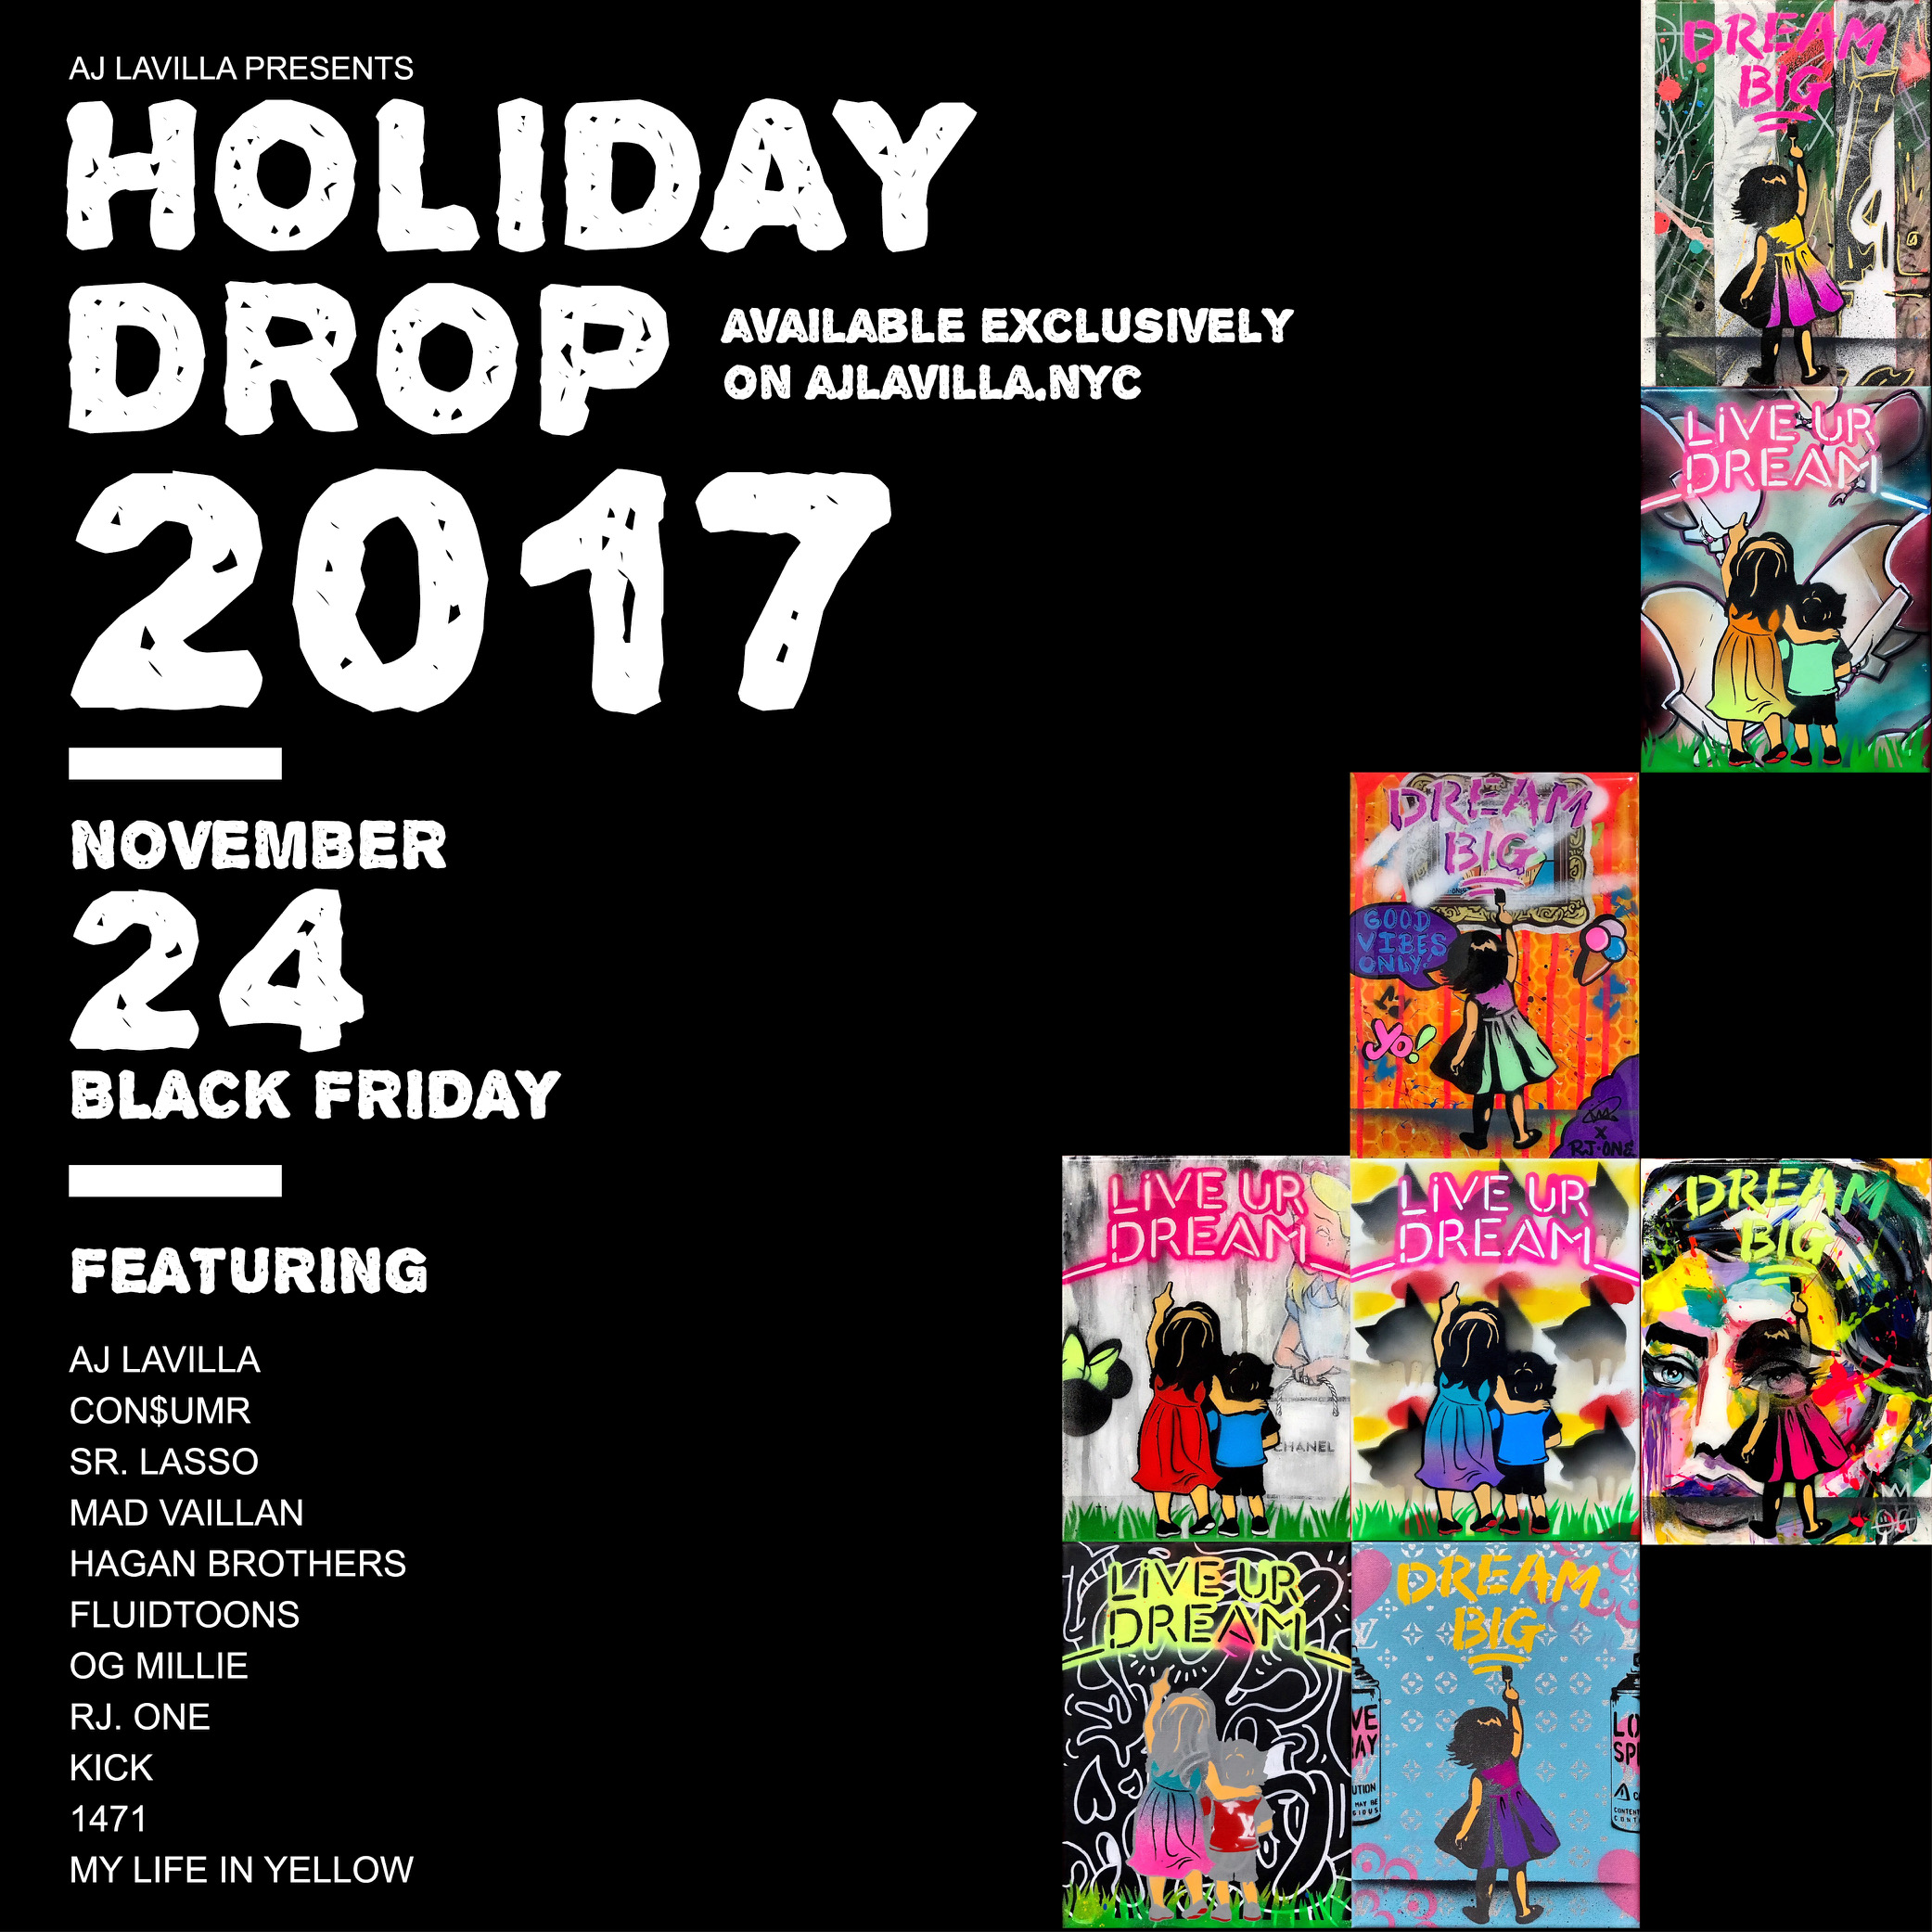 Holiday drop_2017_1000 x 10004.JPG